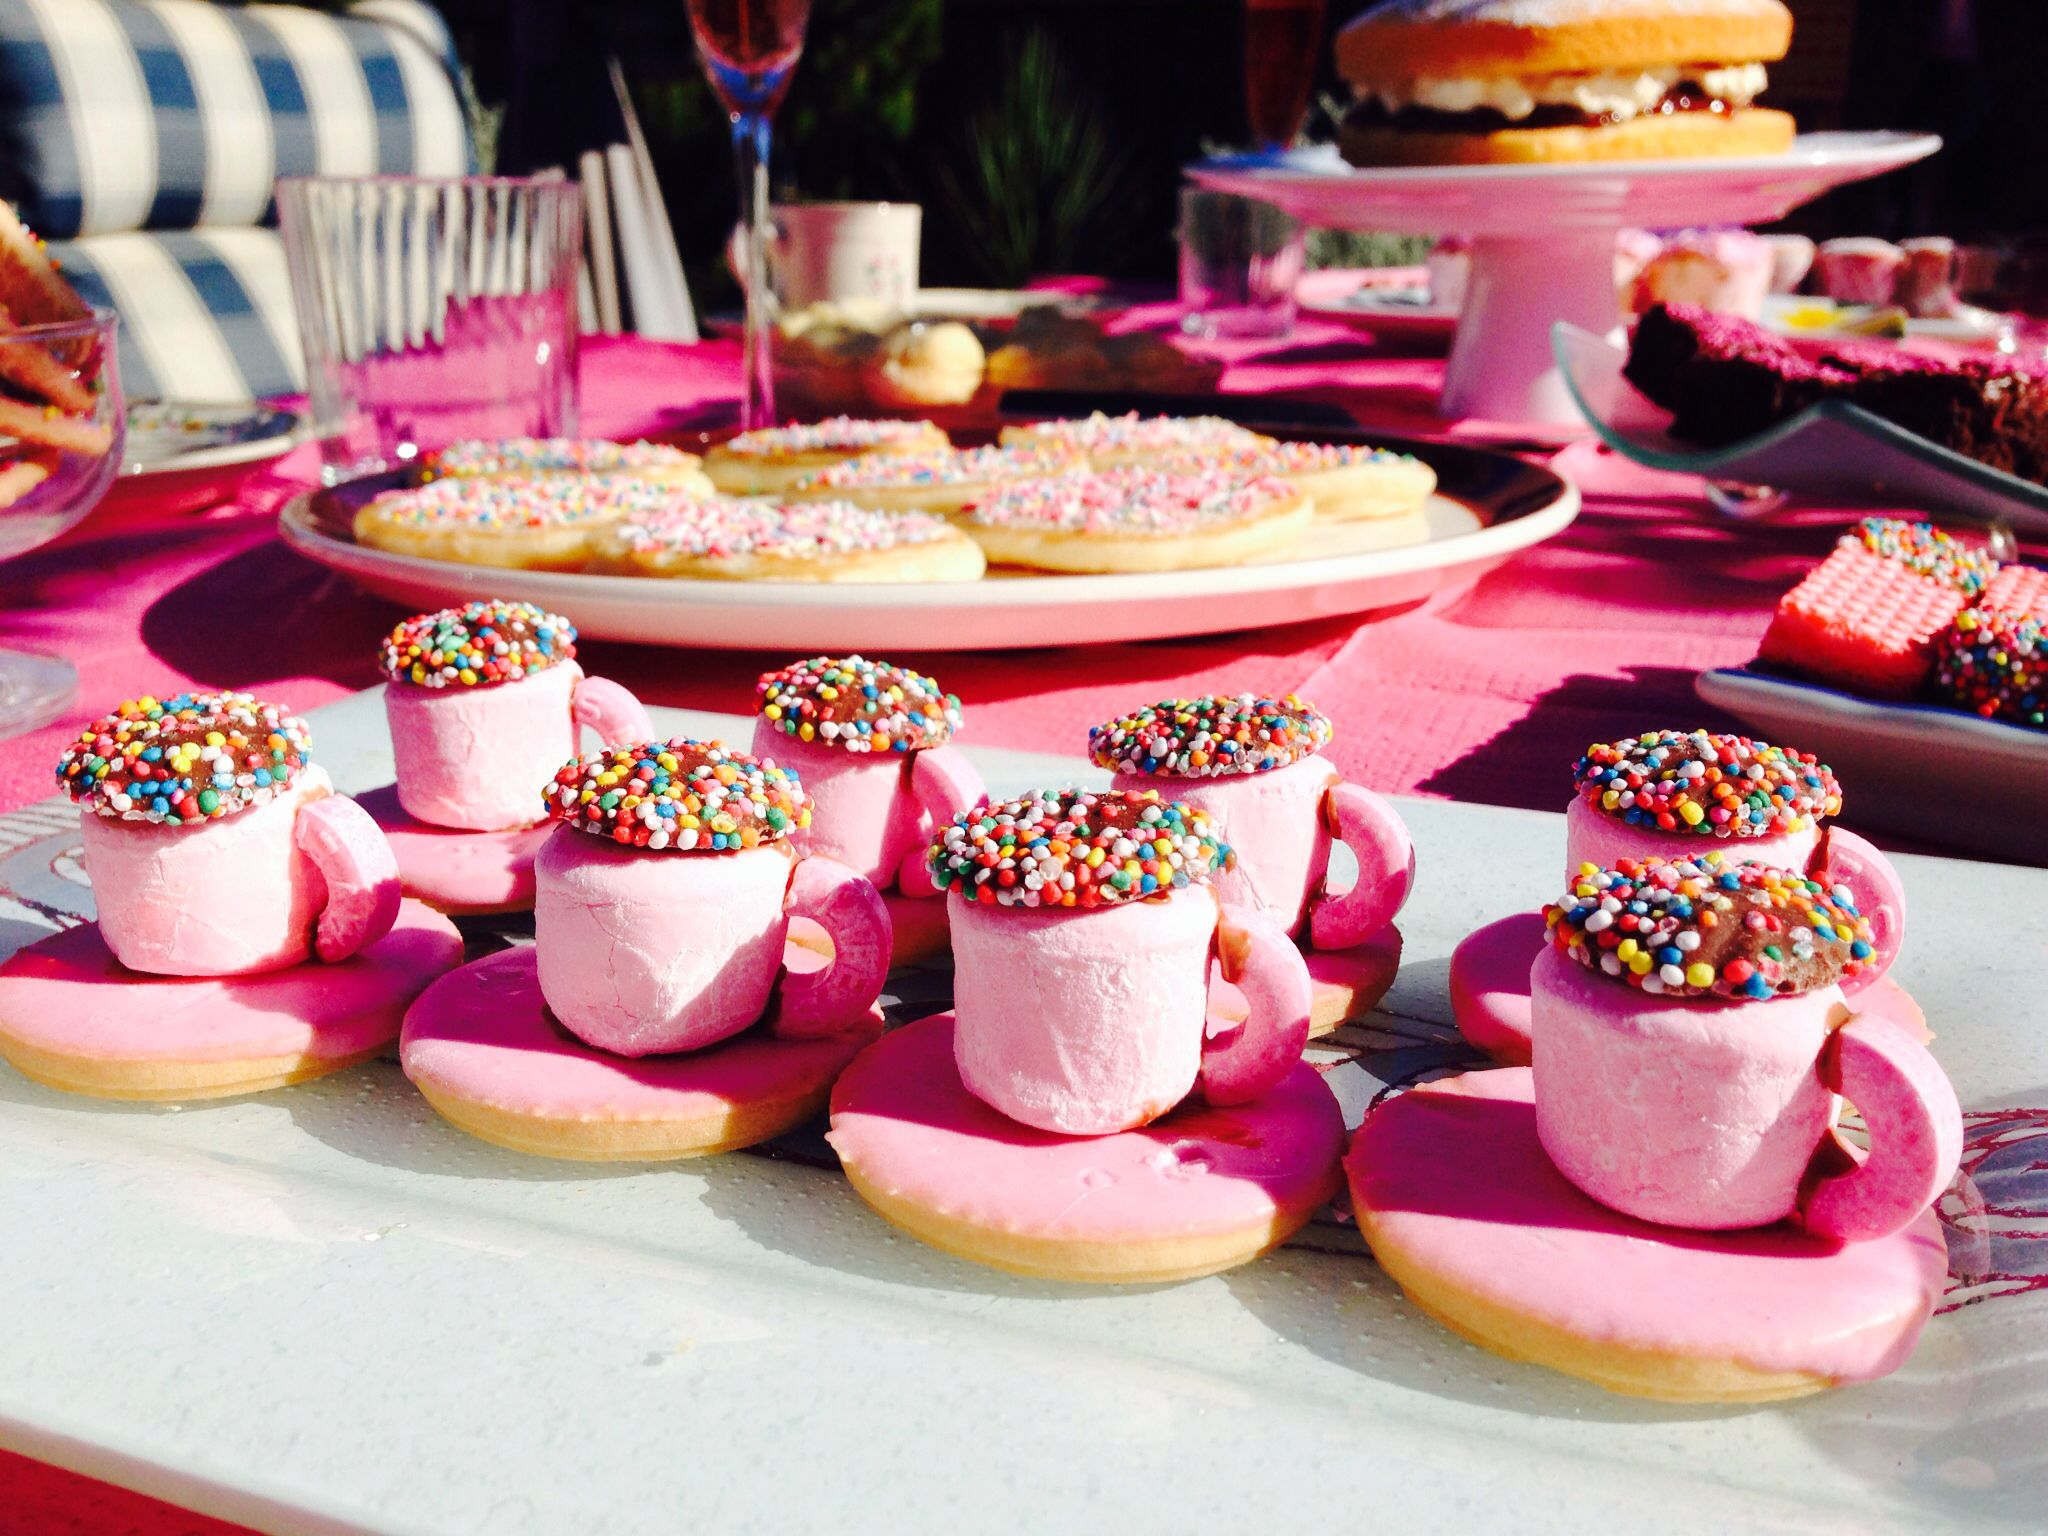 High tea food ideas pink - I know who would love this! | Tea Party ...